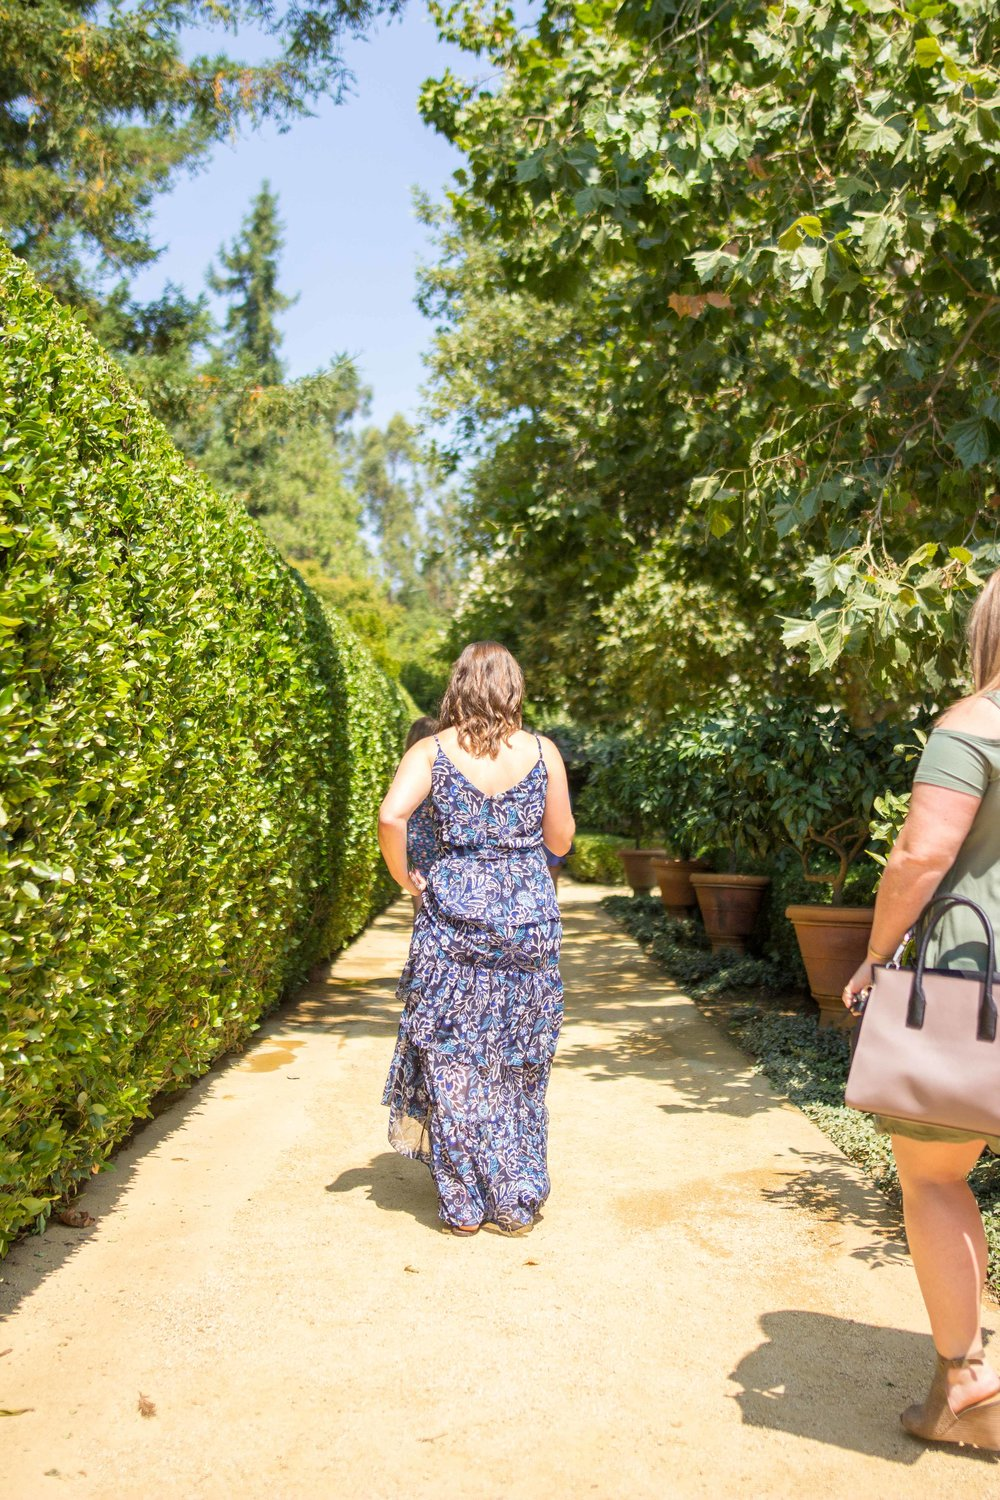 Walking Through the Courtyard